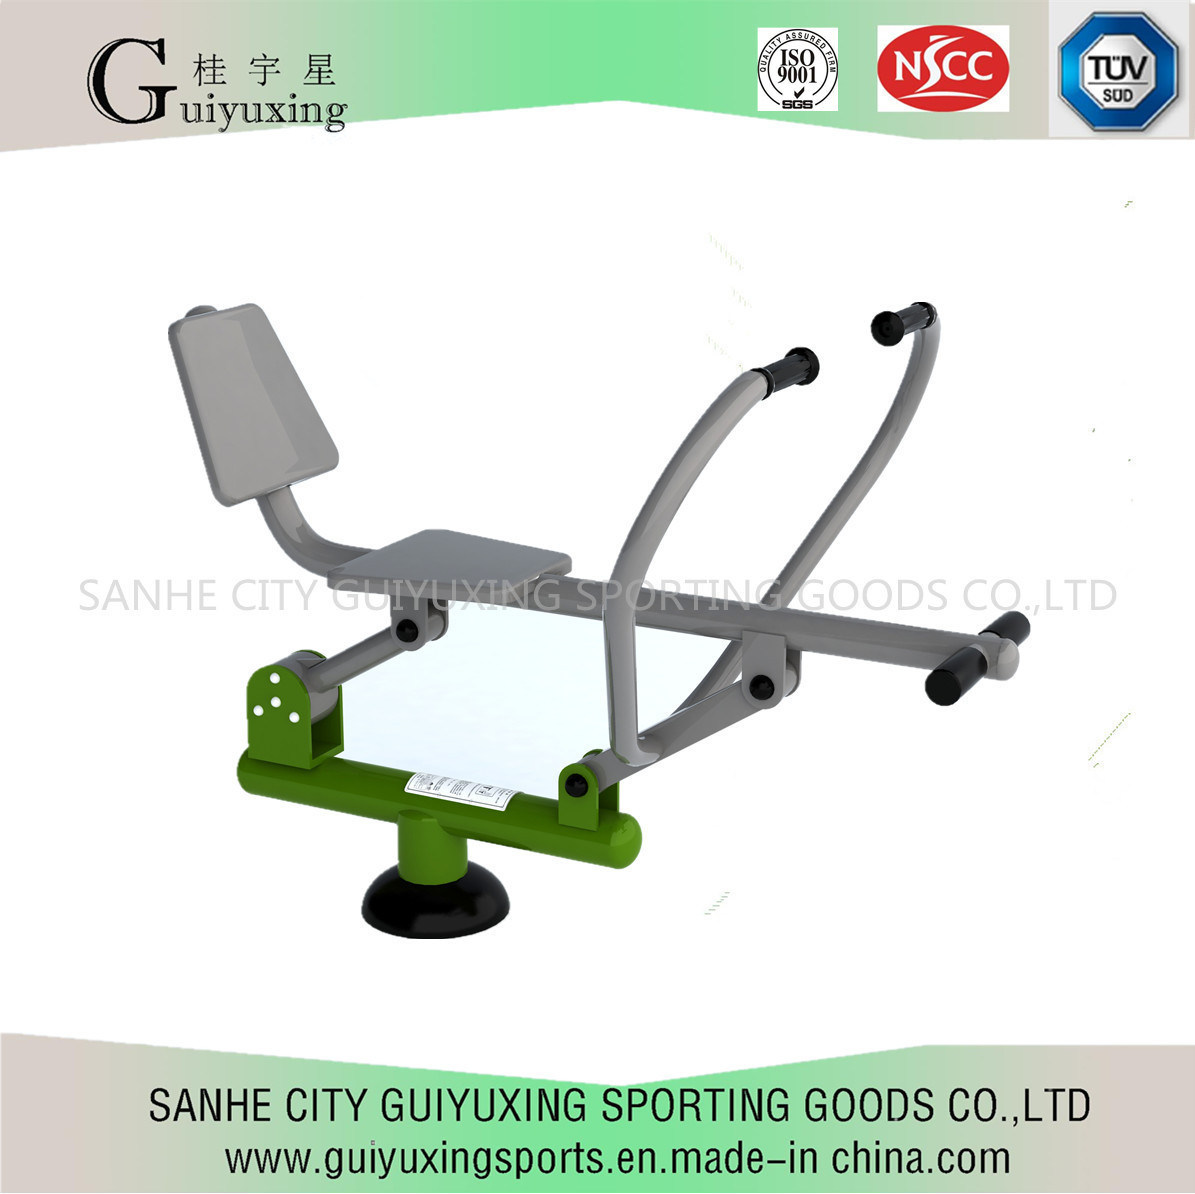 New TUV The Rower of Outdoor Fitness Equipment for Adult